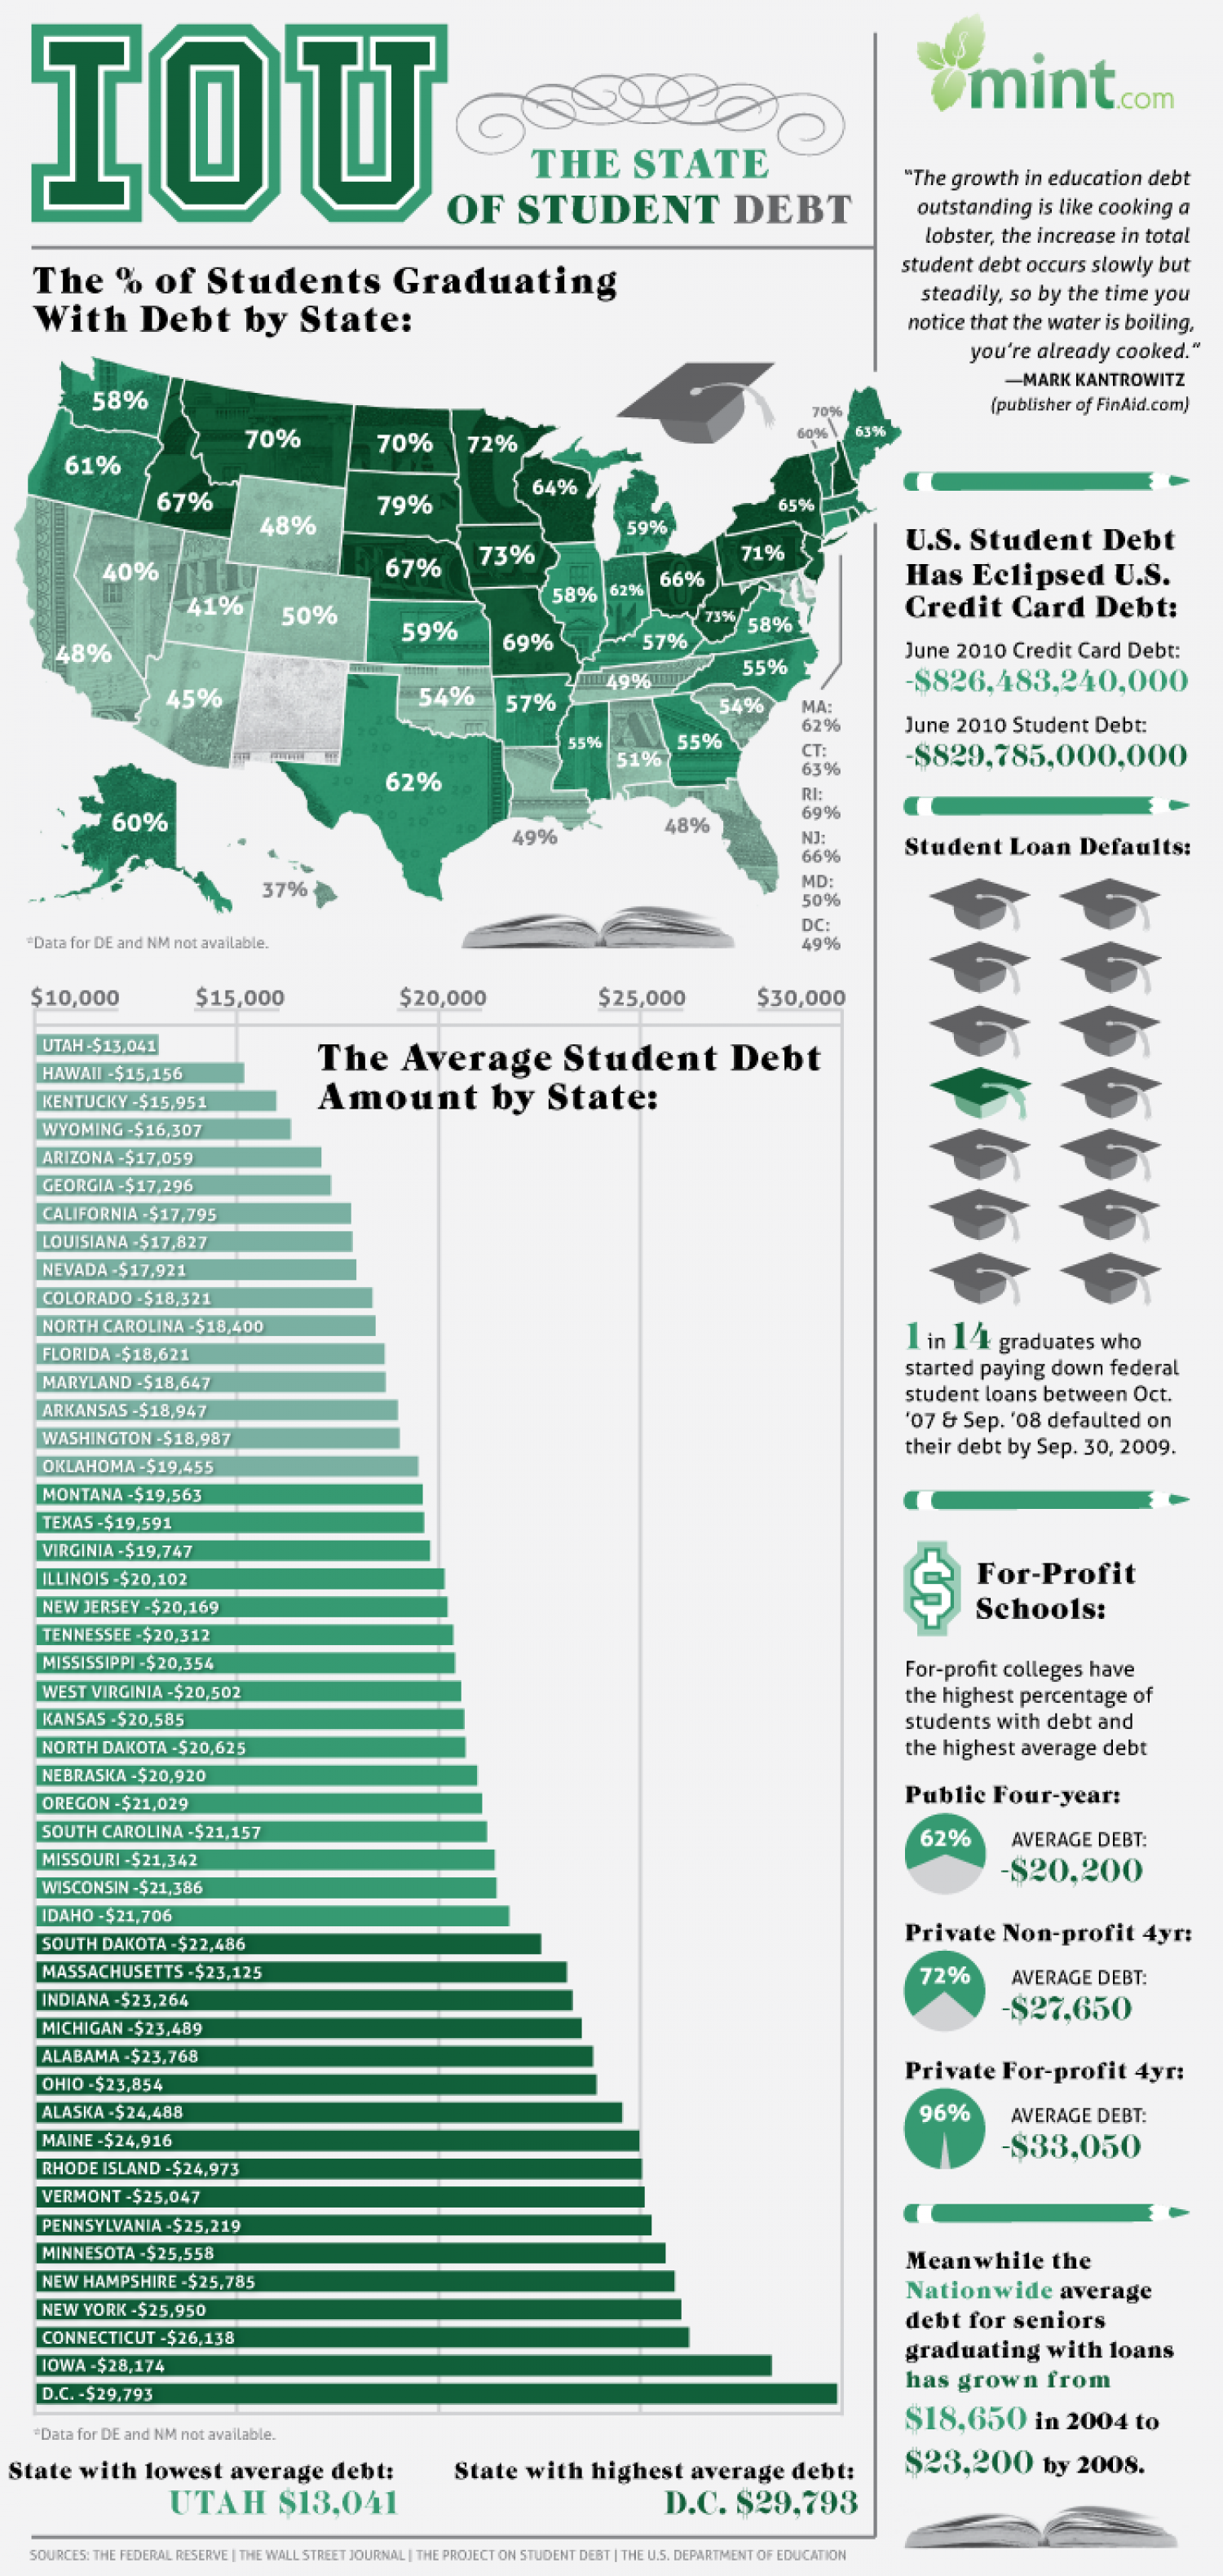 IOU: The State of Student Debt Infographic